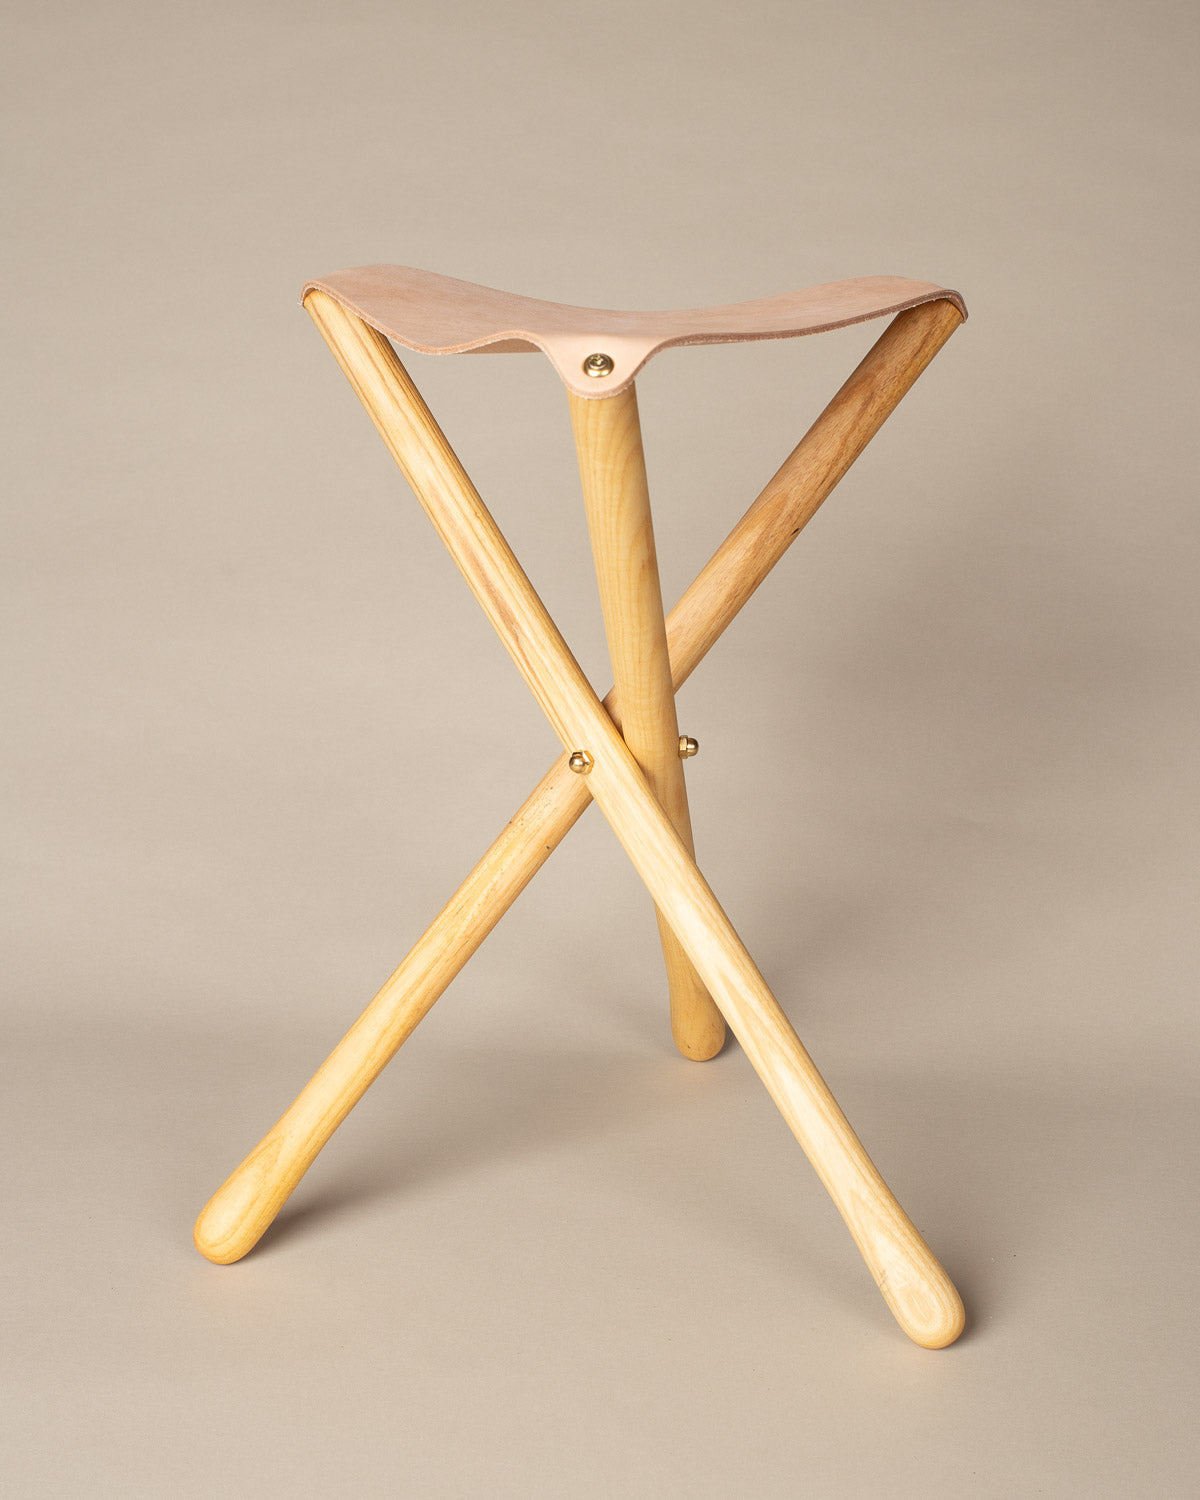 Phenomenal Folding Tripod Camp Stool Woodfaulk Unemploymentrelief Wooden Chair Designs For Living Room Unemploymentrelieforg